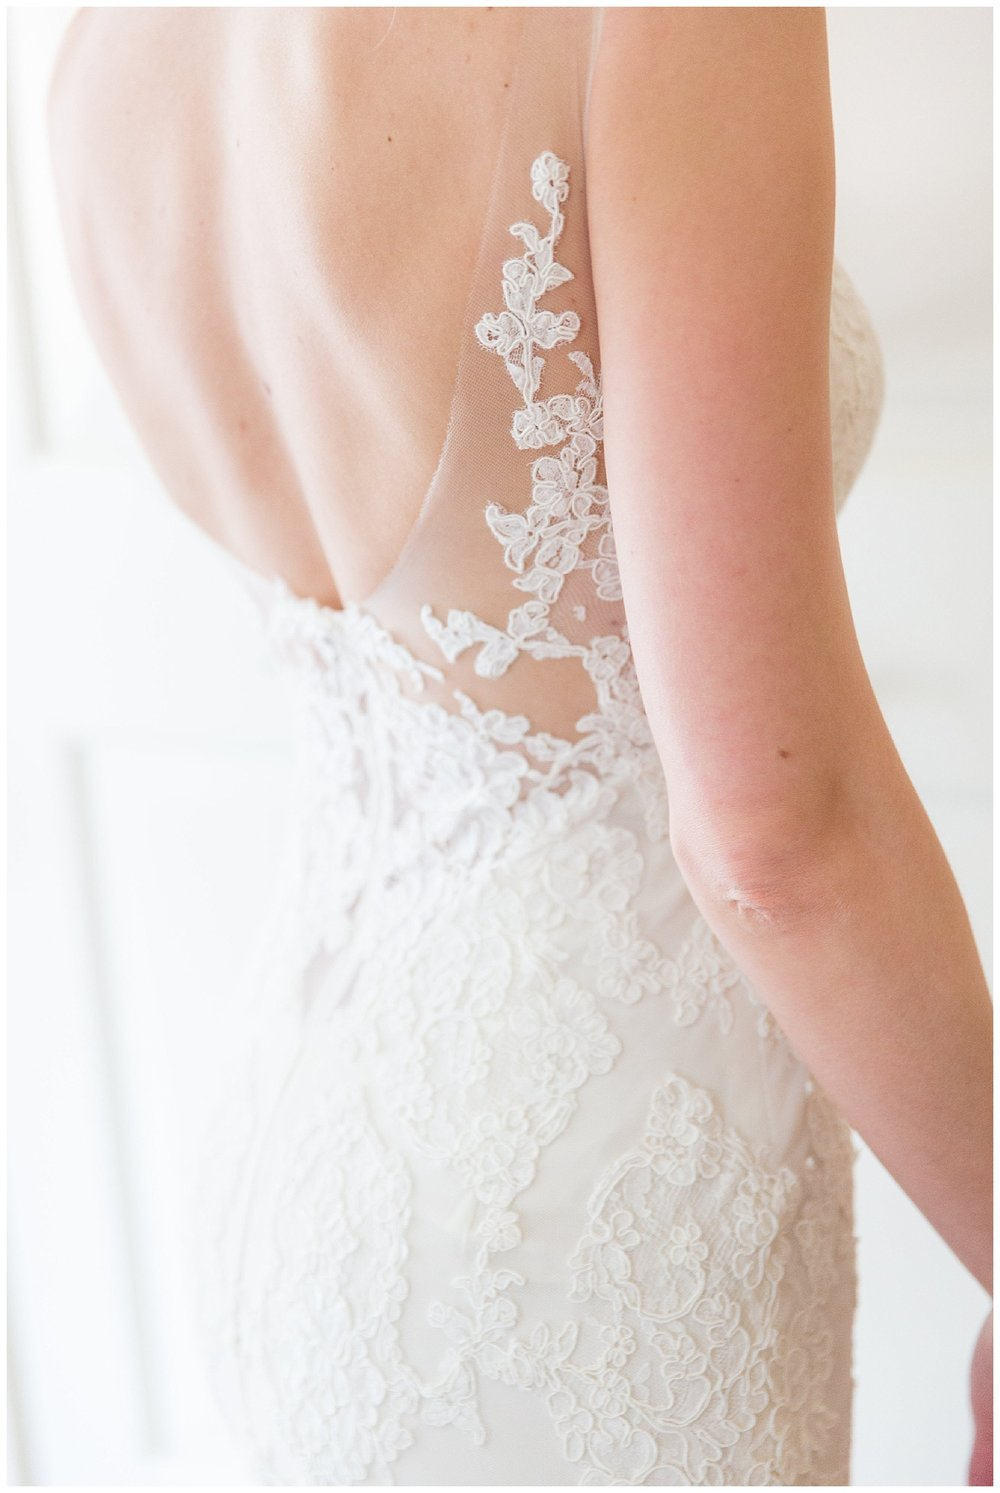 Phoenix-Arizona-Wedding-Dress-Shopping-Tips-From-A-Wedding-Planner.jpg